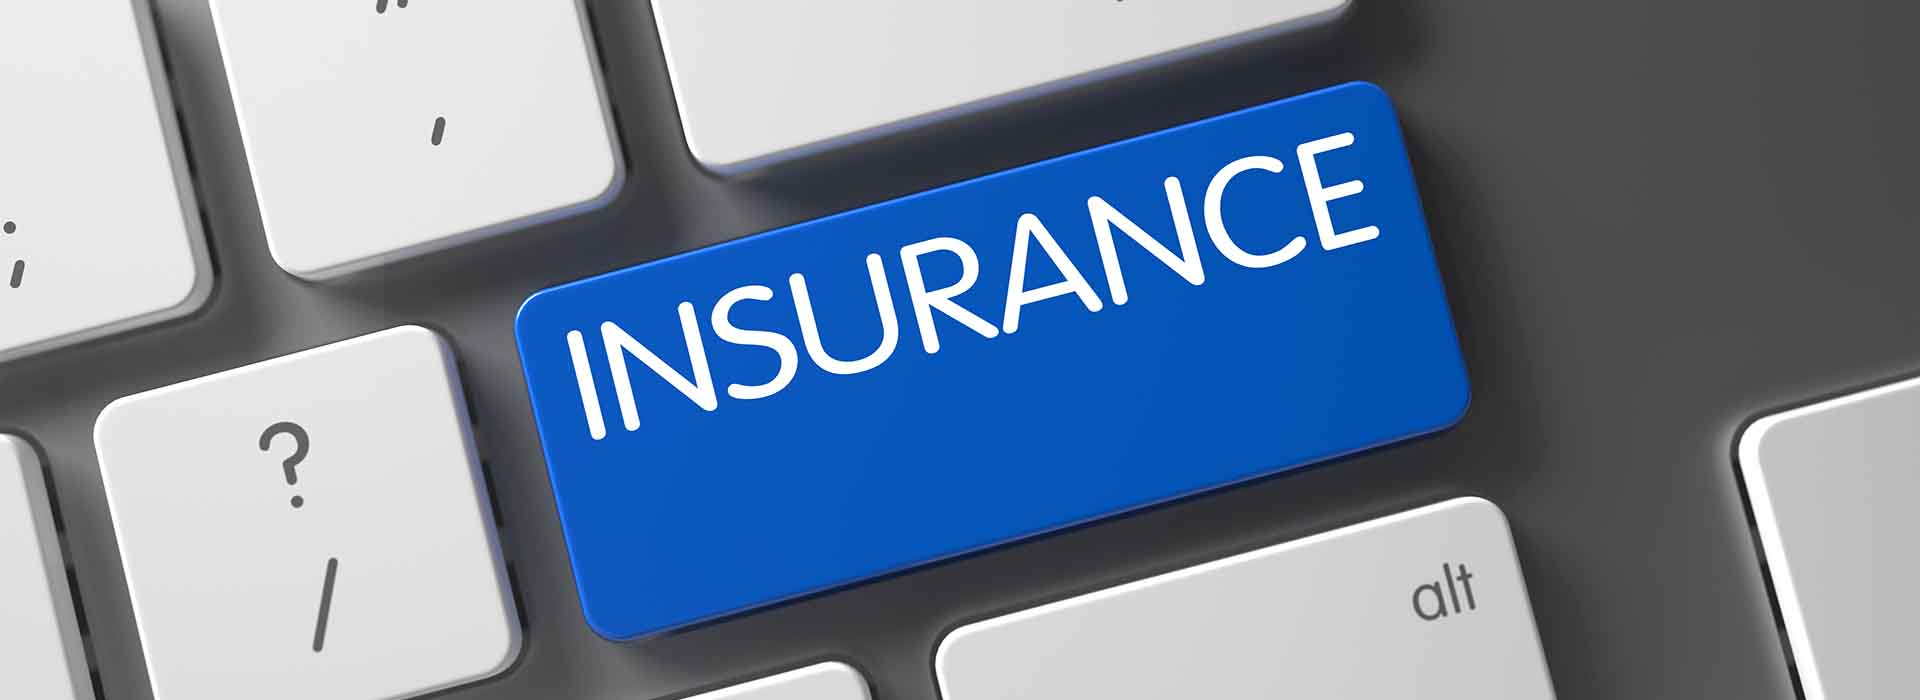 Insurance GDP bounces back to growth